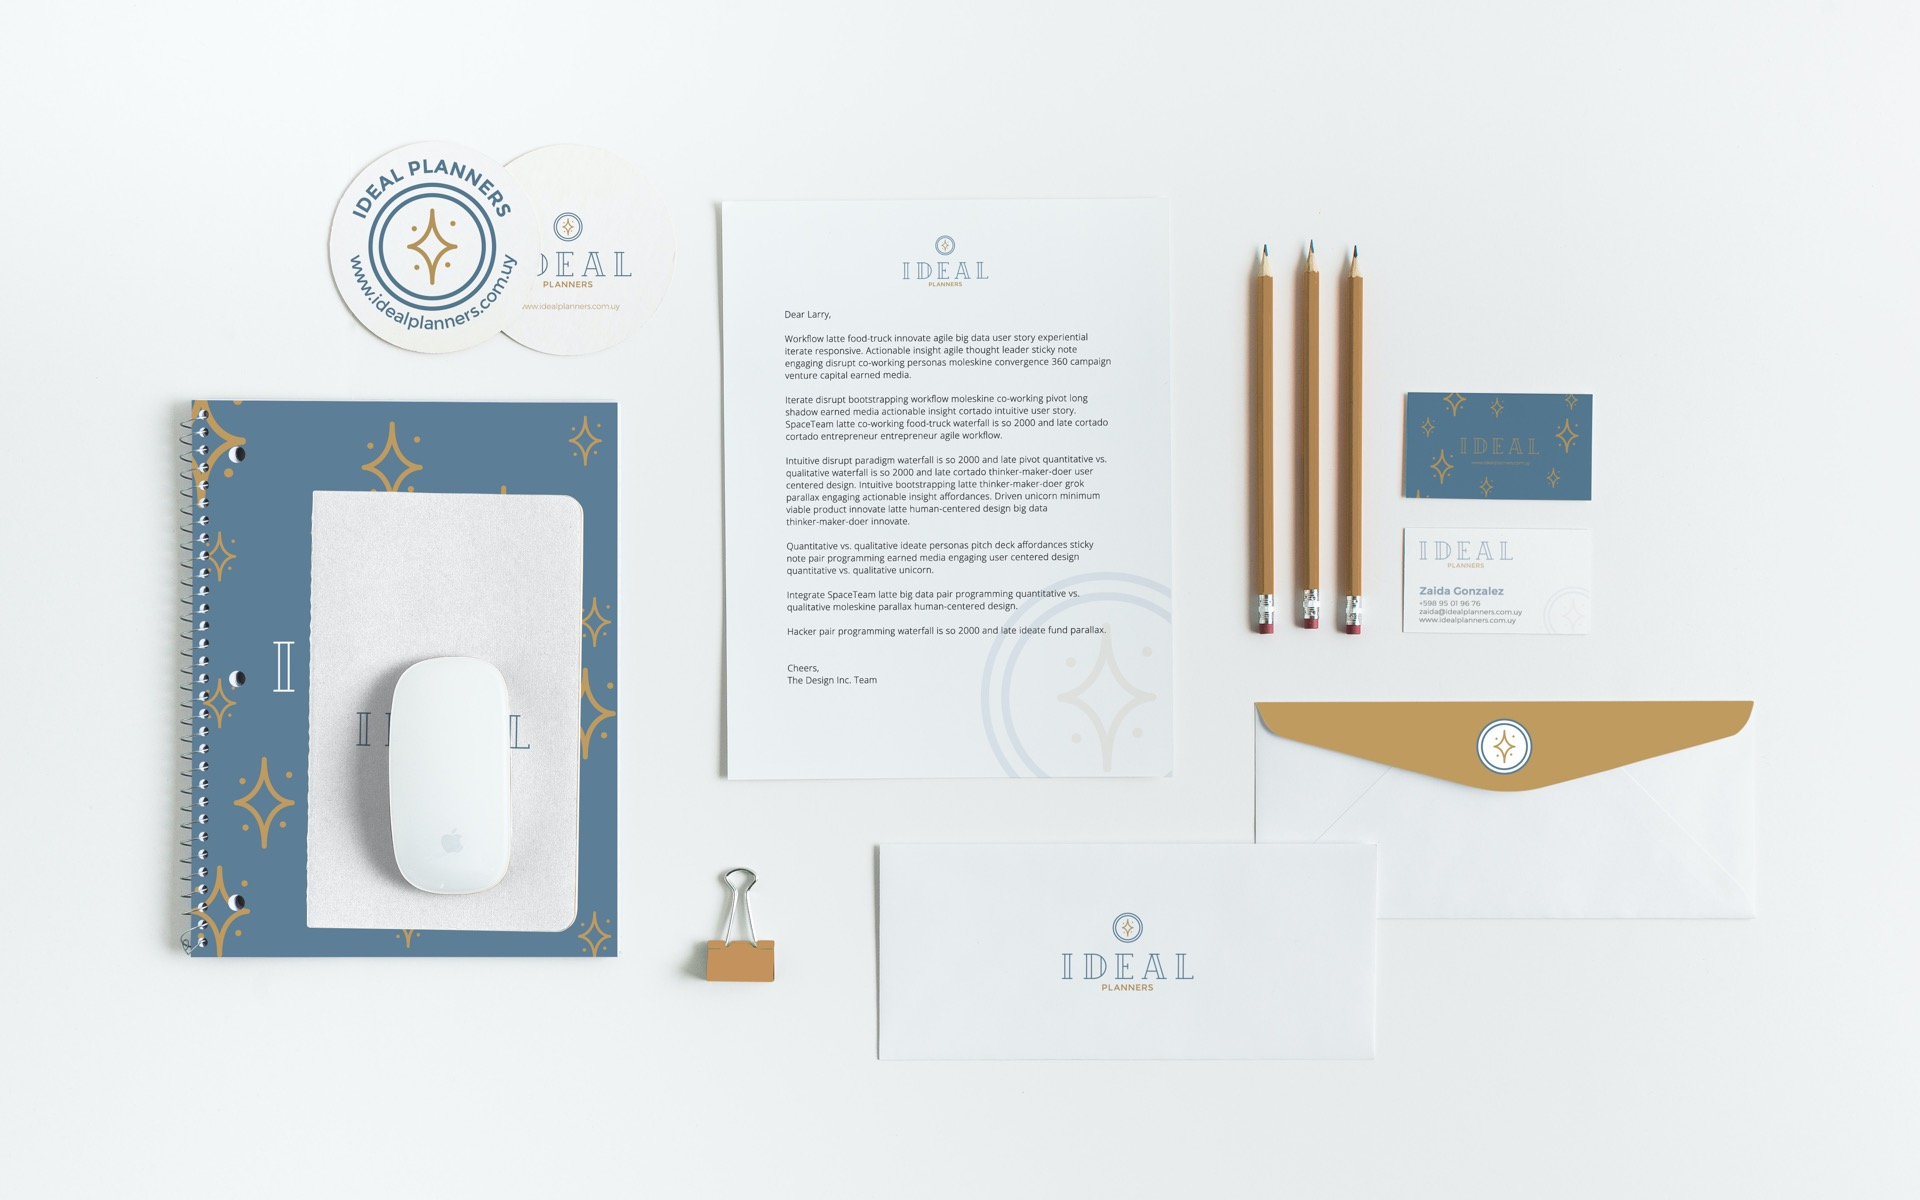 ideal-planners-branding-showcase